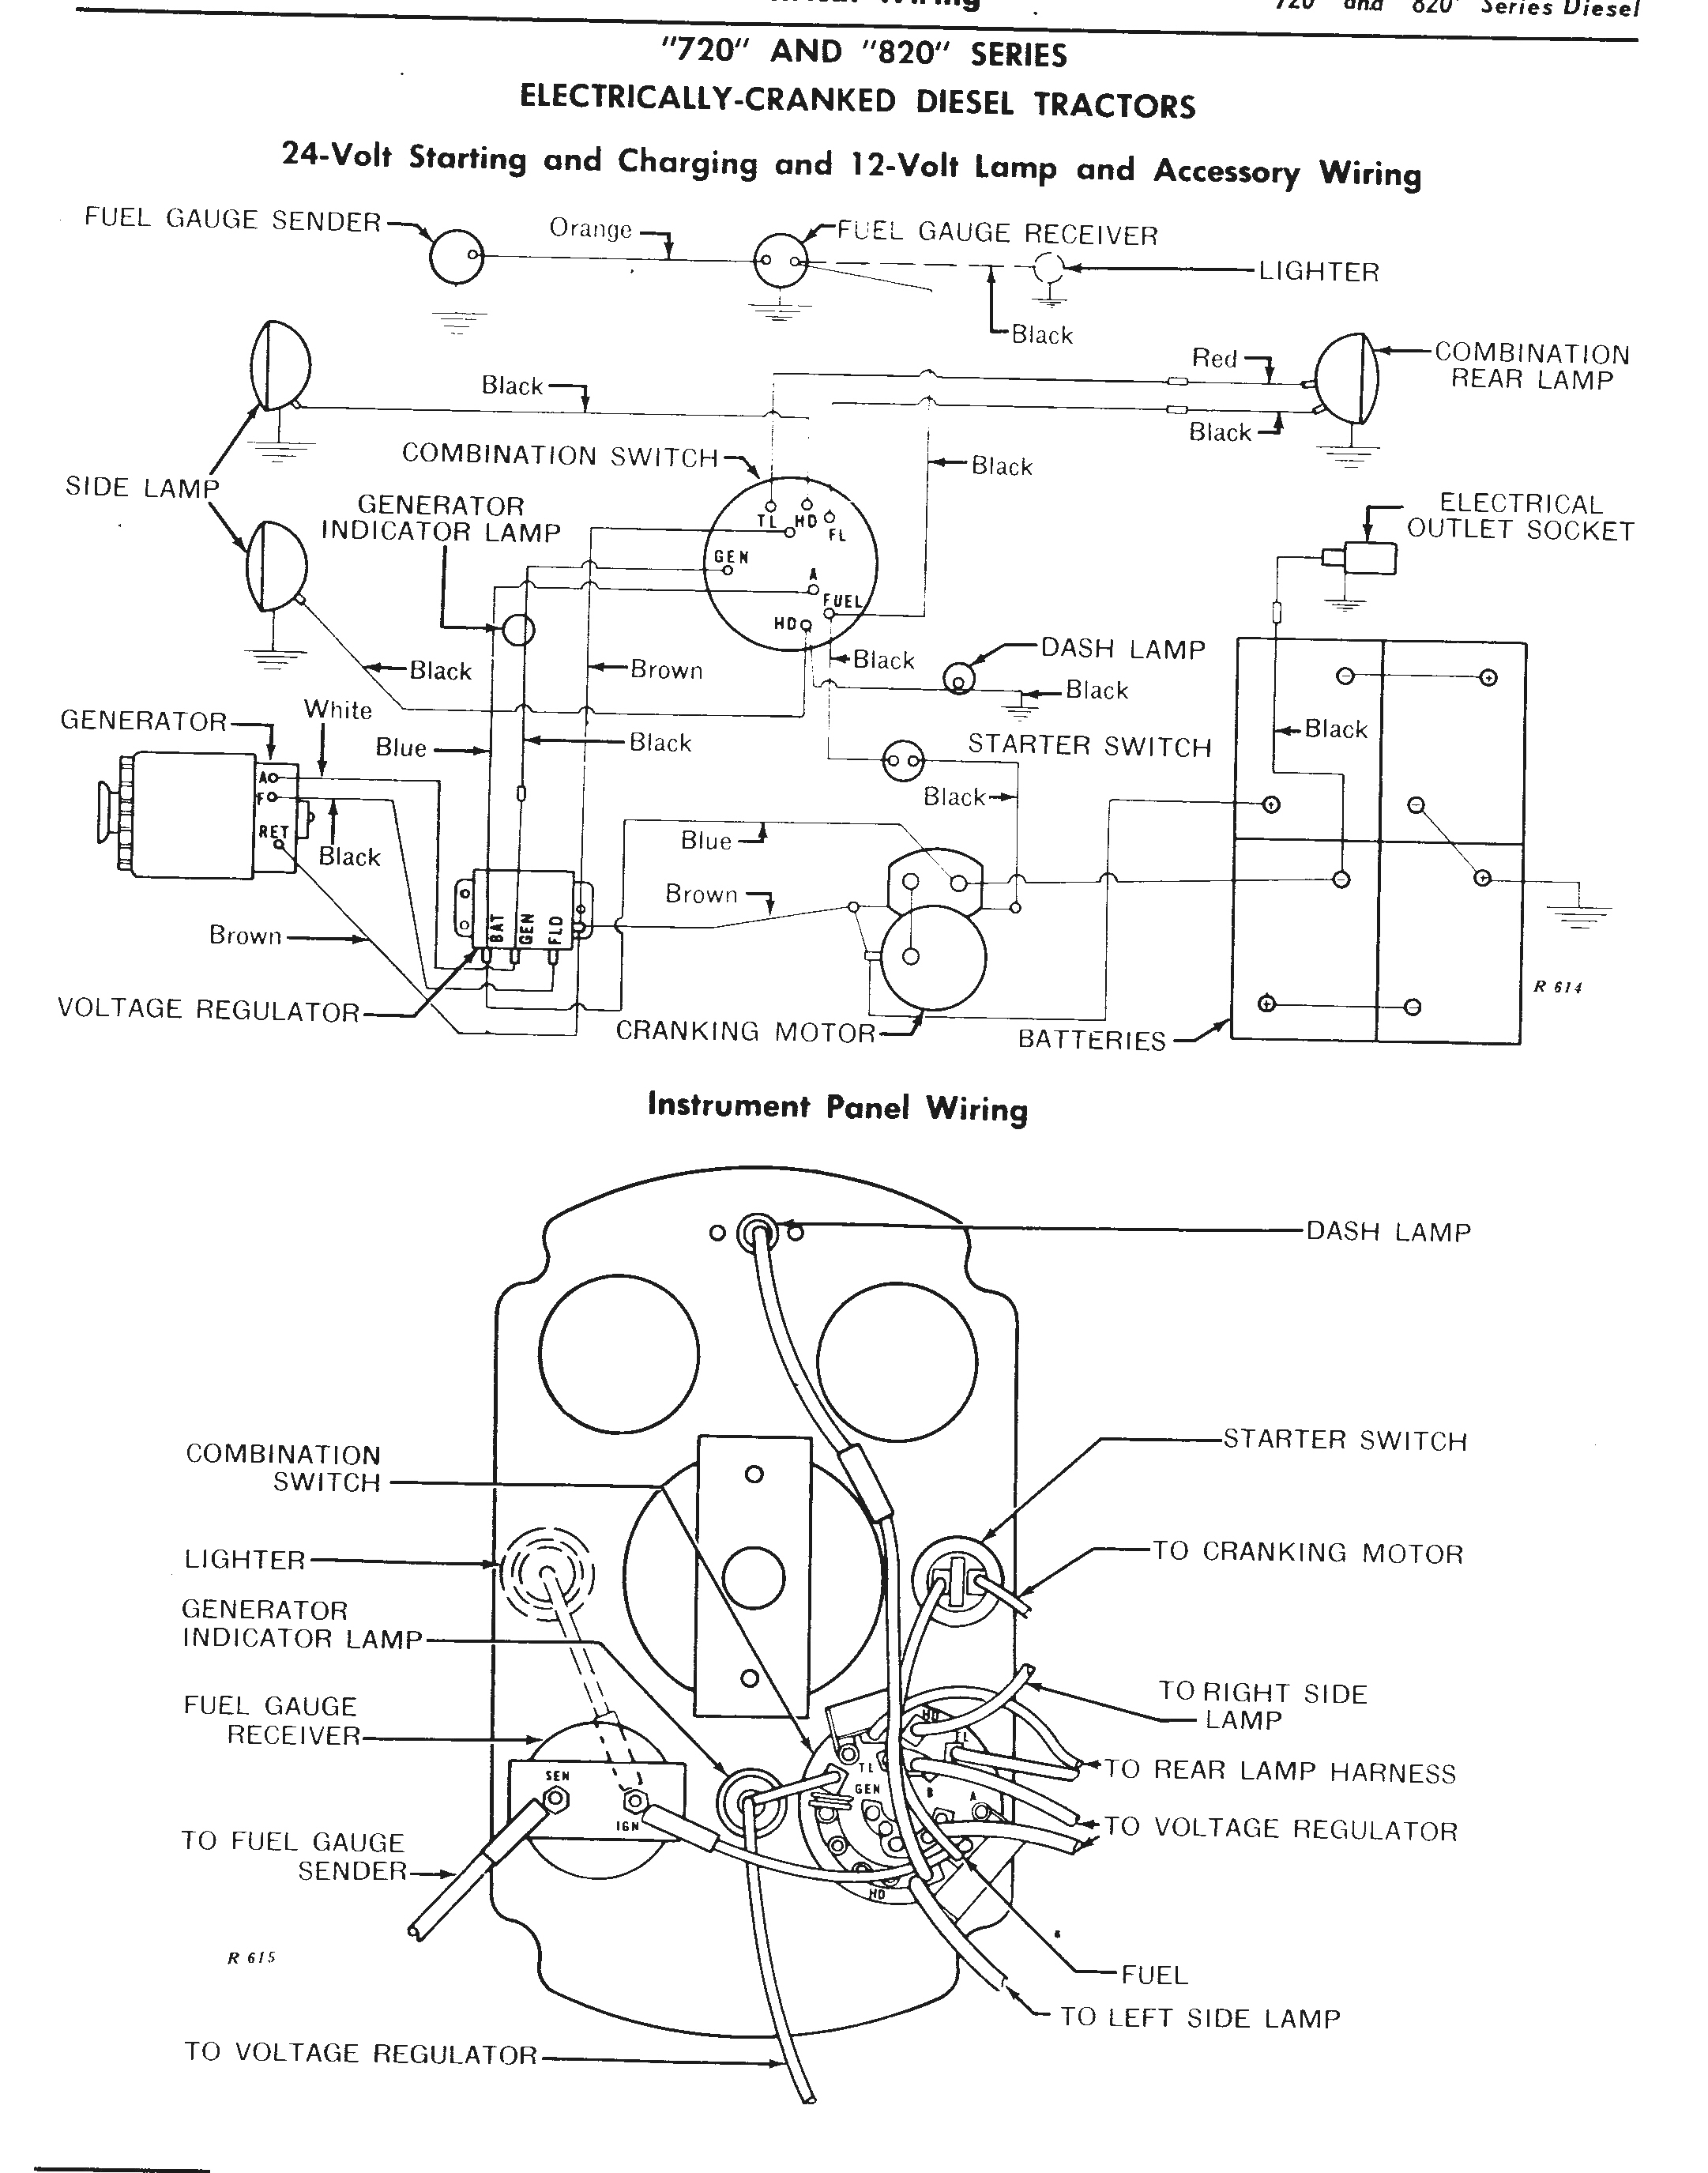 24 volt system wiring diagram the john deere 24 volt electrical system explained john deere s original wiring diagram